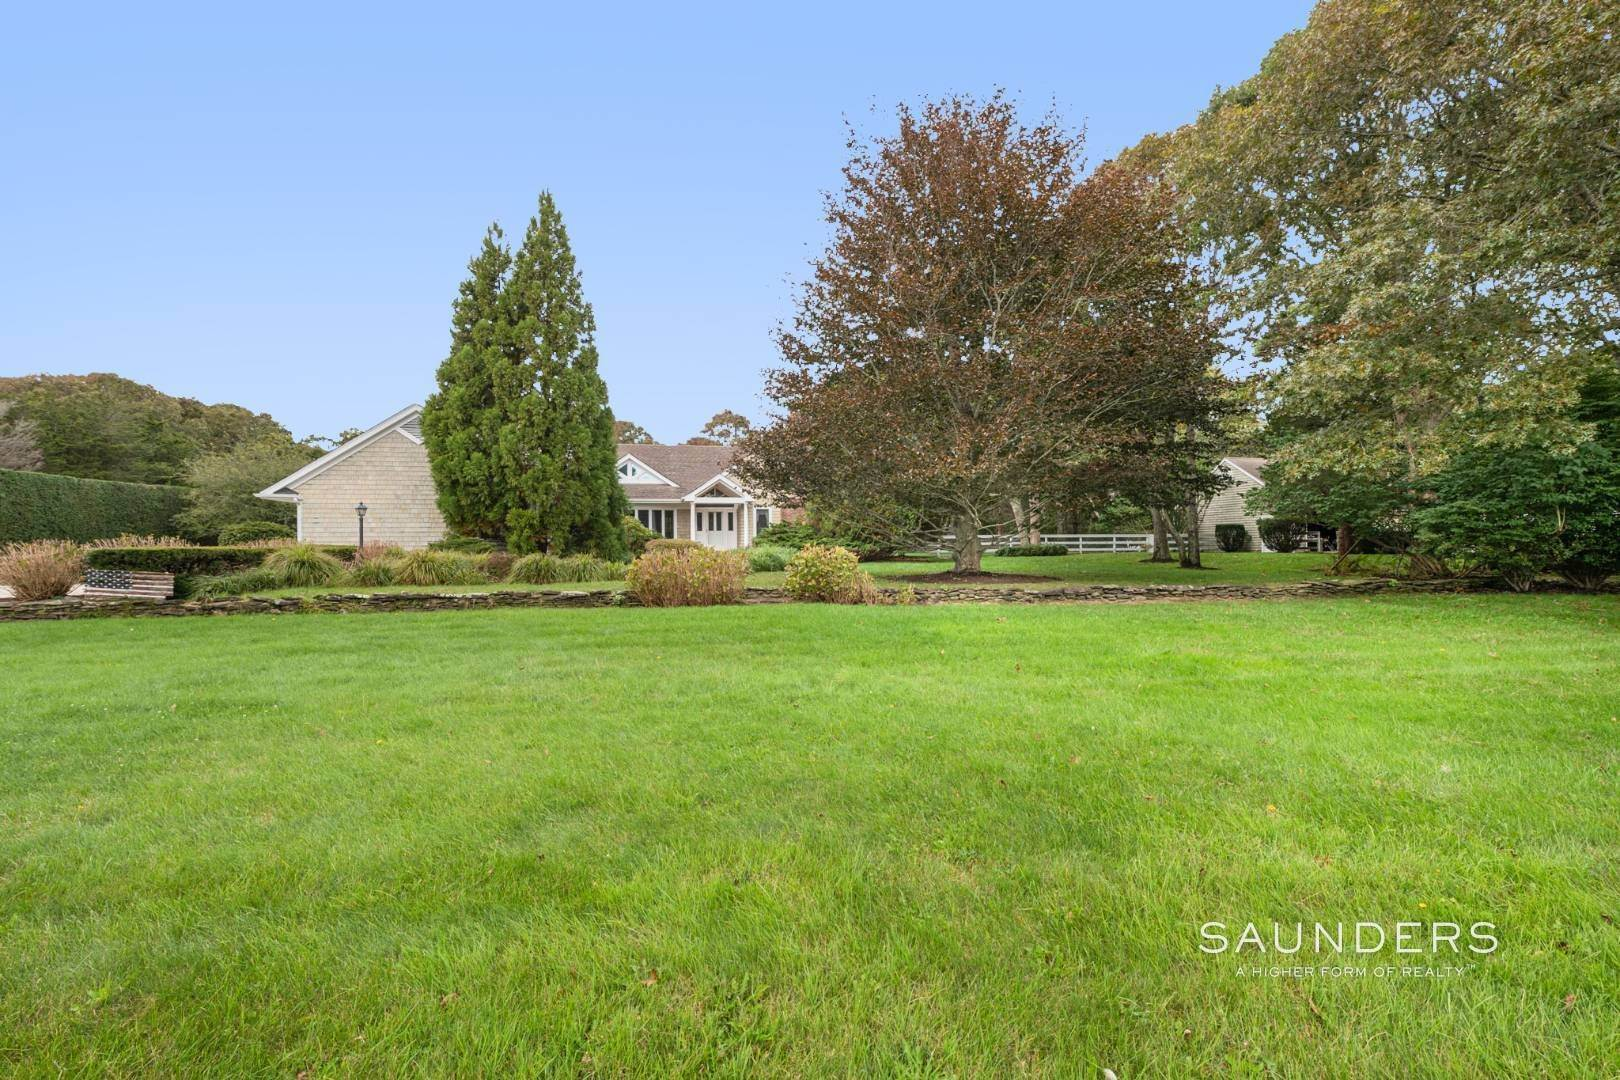 Single Family Homes for Sale at Prime 2.8 Acres In Sagaponack Village W/ Barn & Room For Tennis 44 Greenleaf Lane, Sagaponack Village, Southampton Town, NY 11962